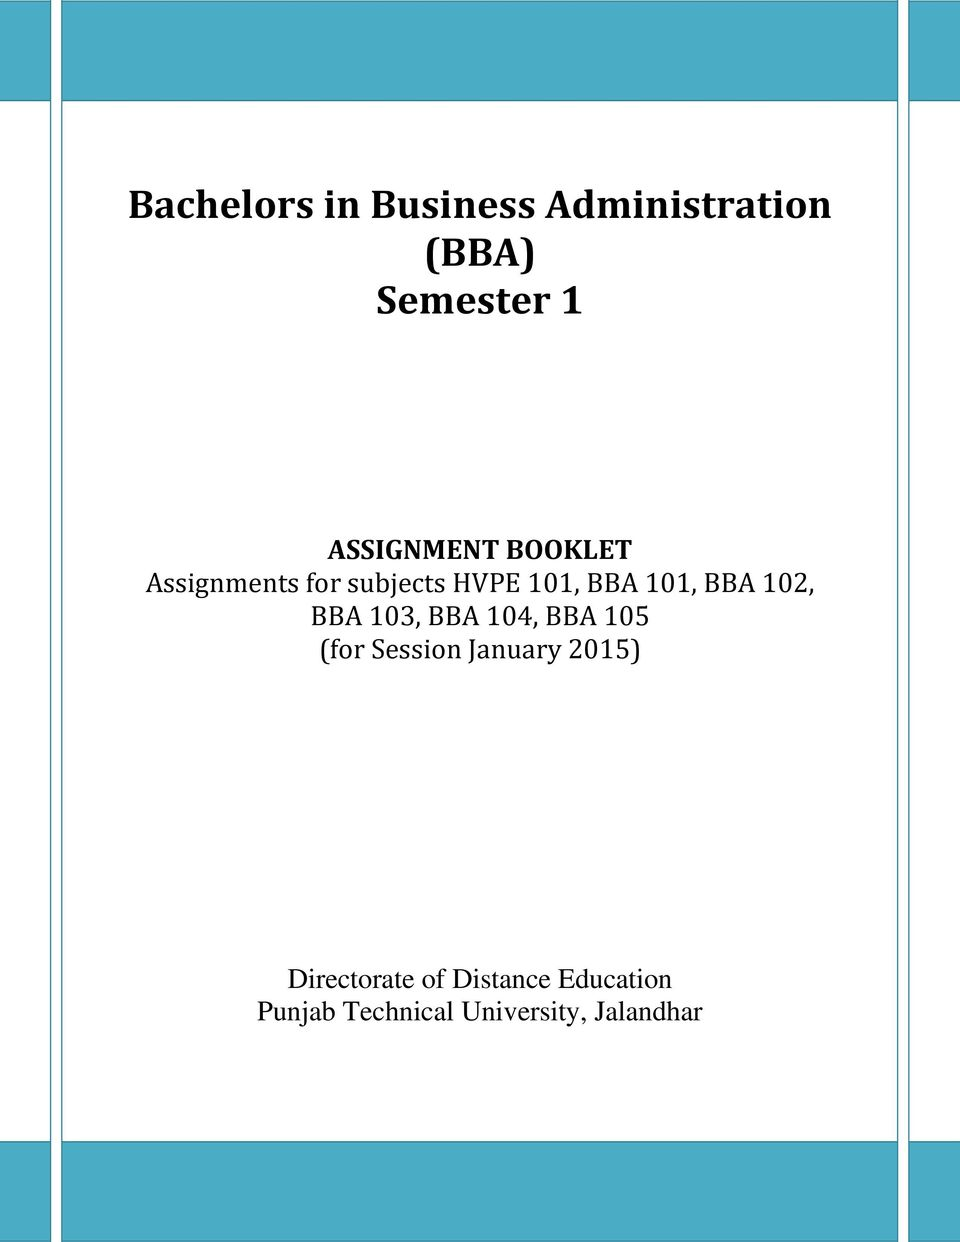 BBA 102, BBA 103, BBA 104, BBA 105 (for Session January 2015)